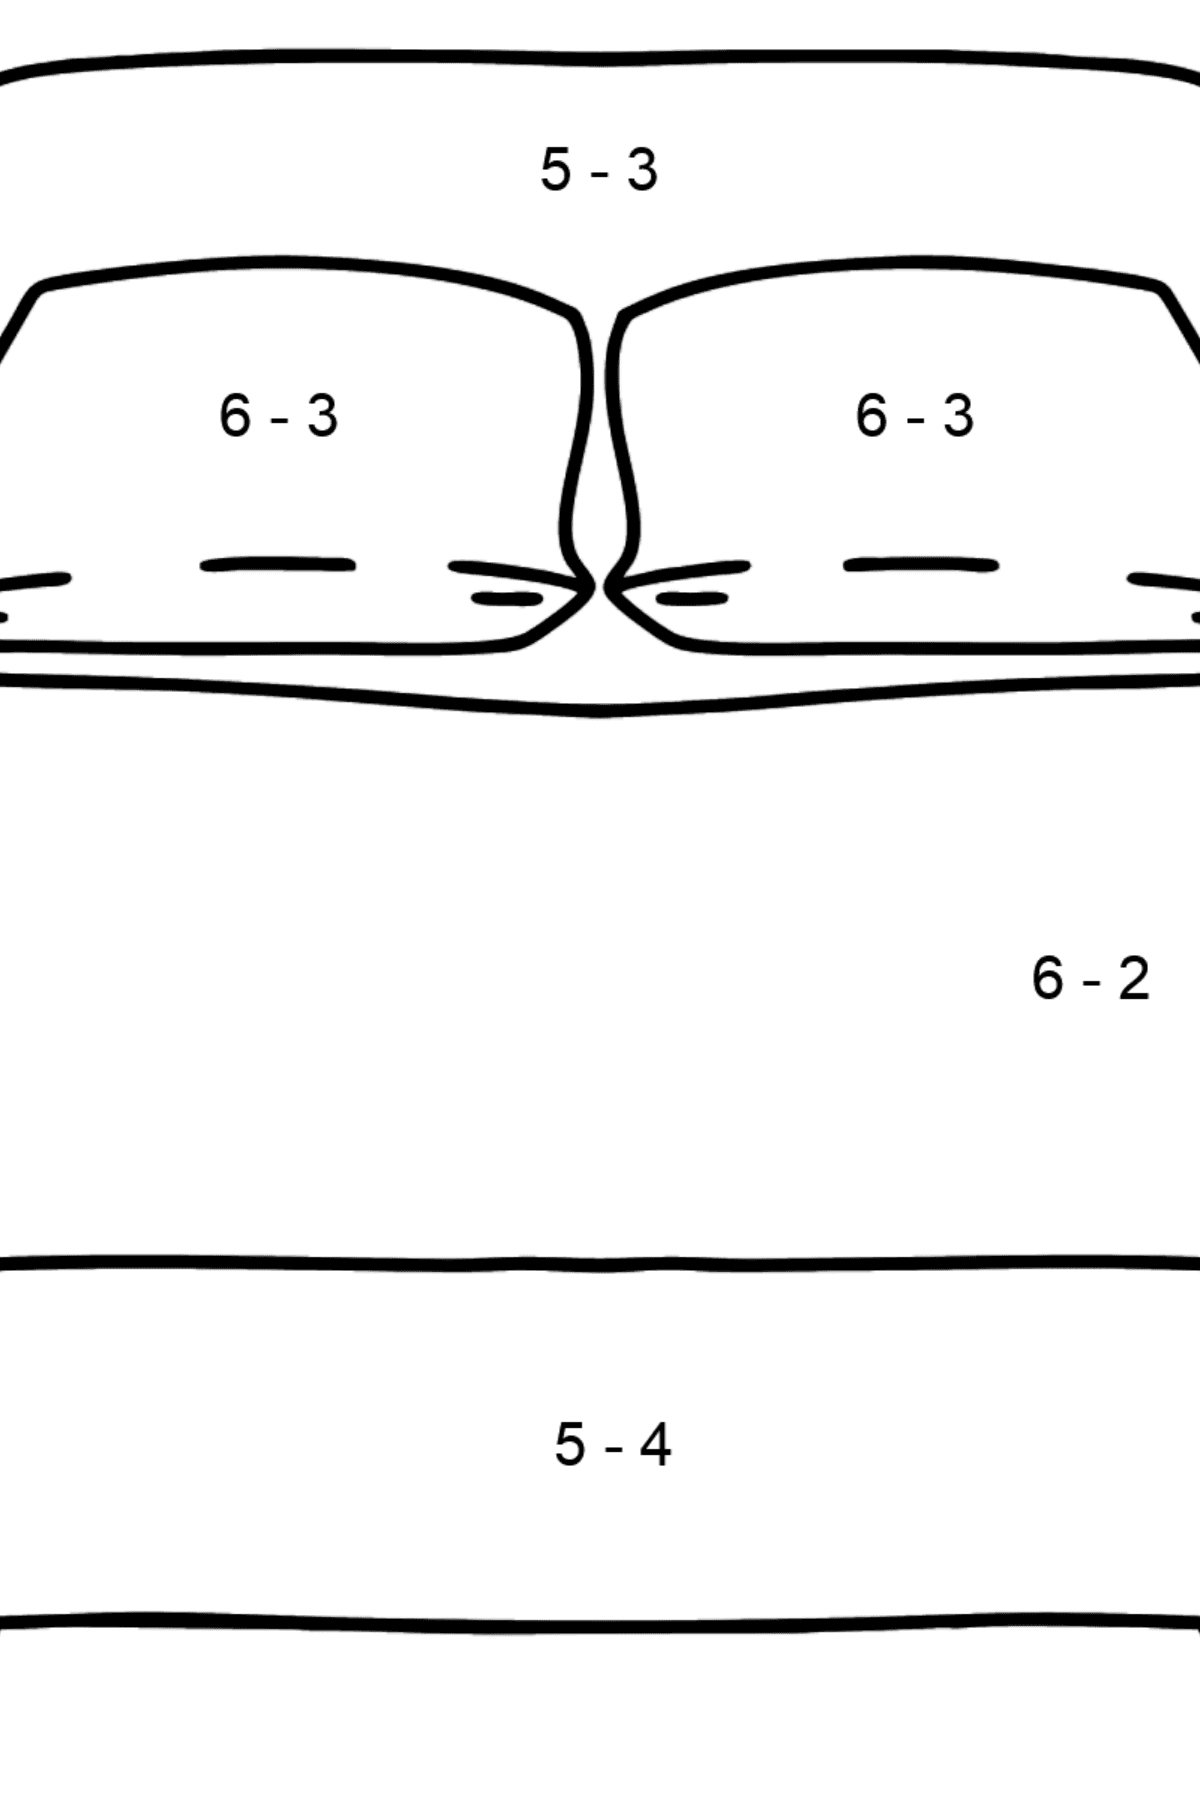 Bed coloring page - Math Coloring - Subtraction for Kids